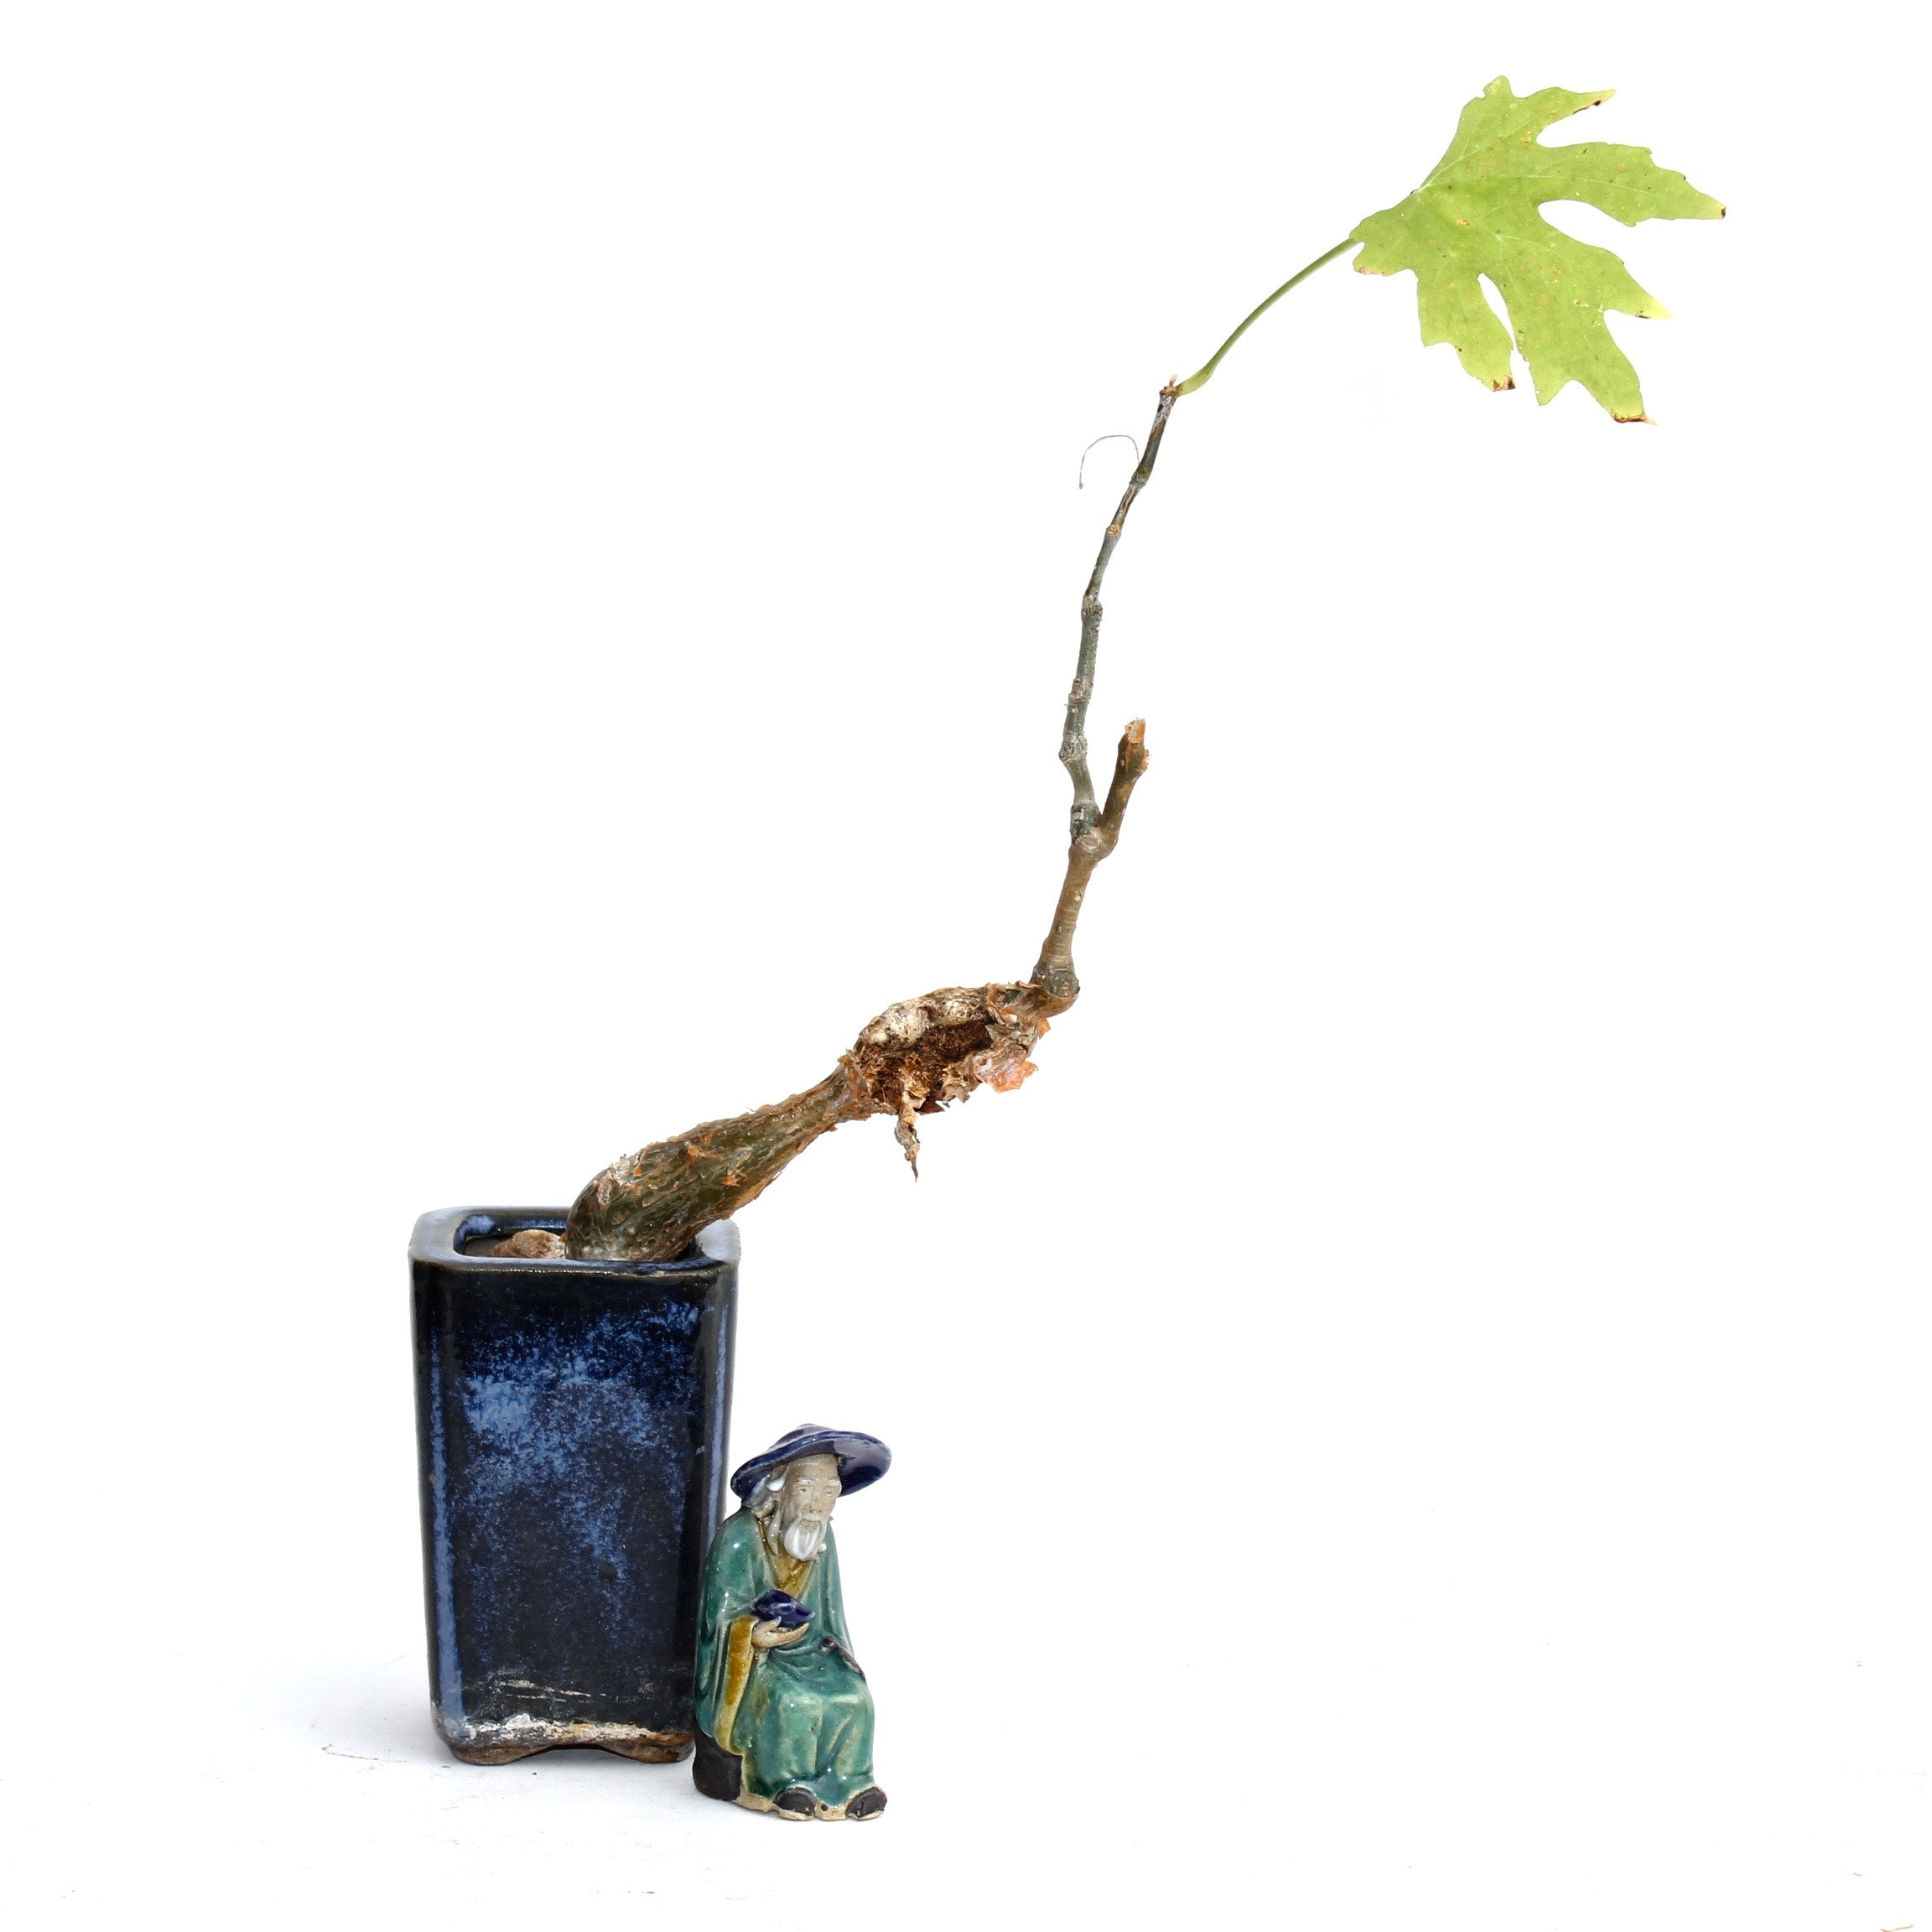 Maple Tree Plant in Ceramic Planter With Ceramic Figurine